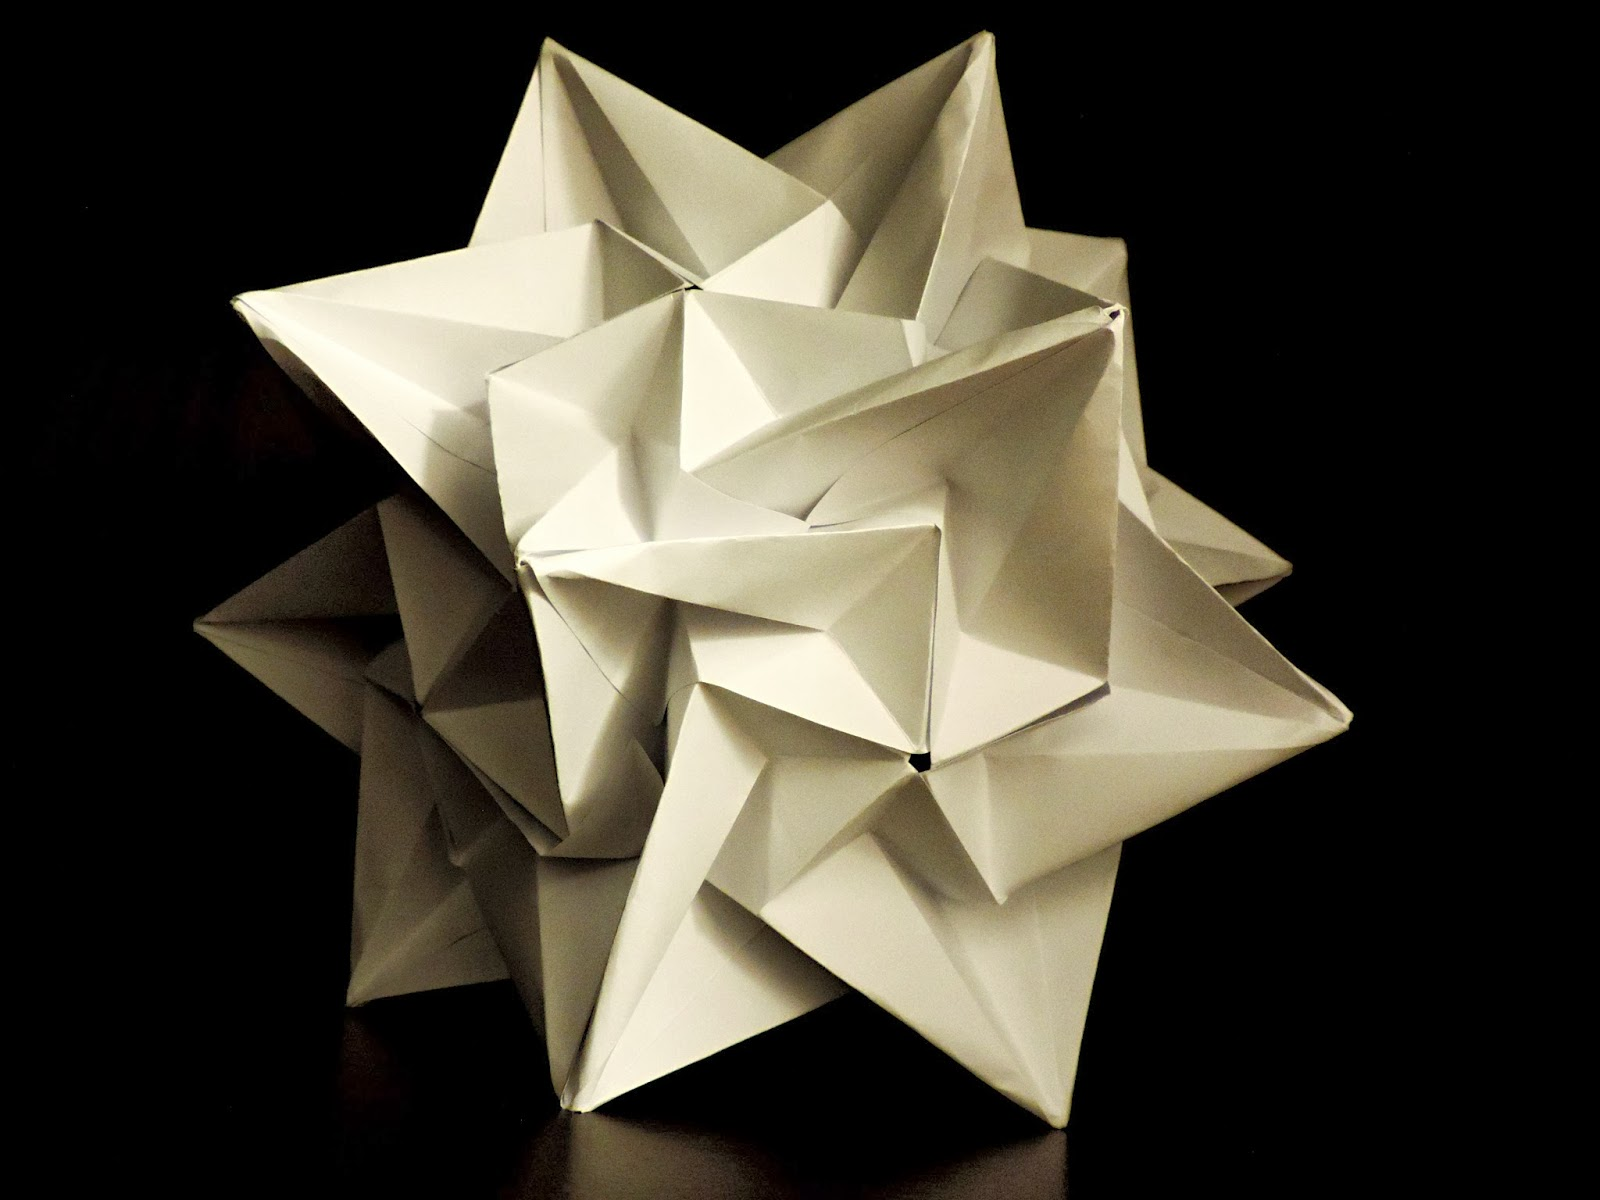 Made Up Of 30 Modular Units They Interlock Each Other So That The Model Could Maintain Its Structure Without Glues Threads